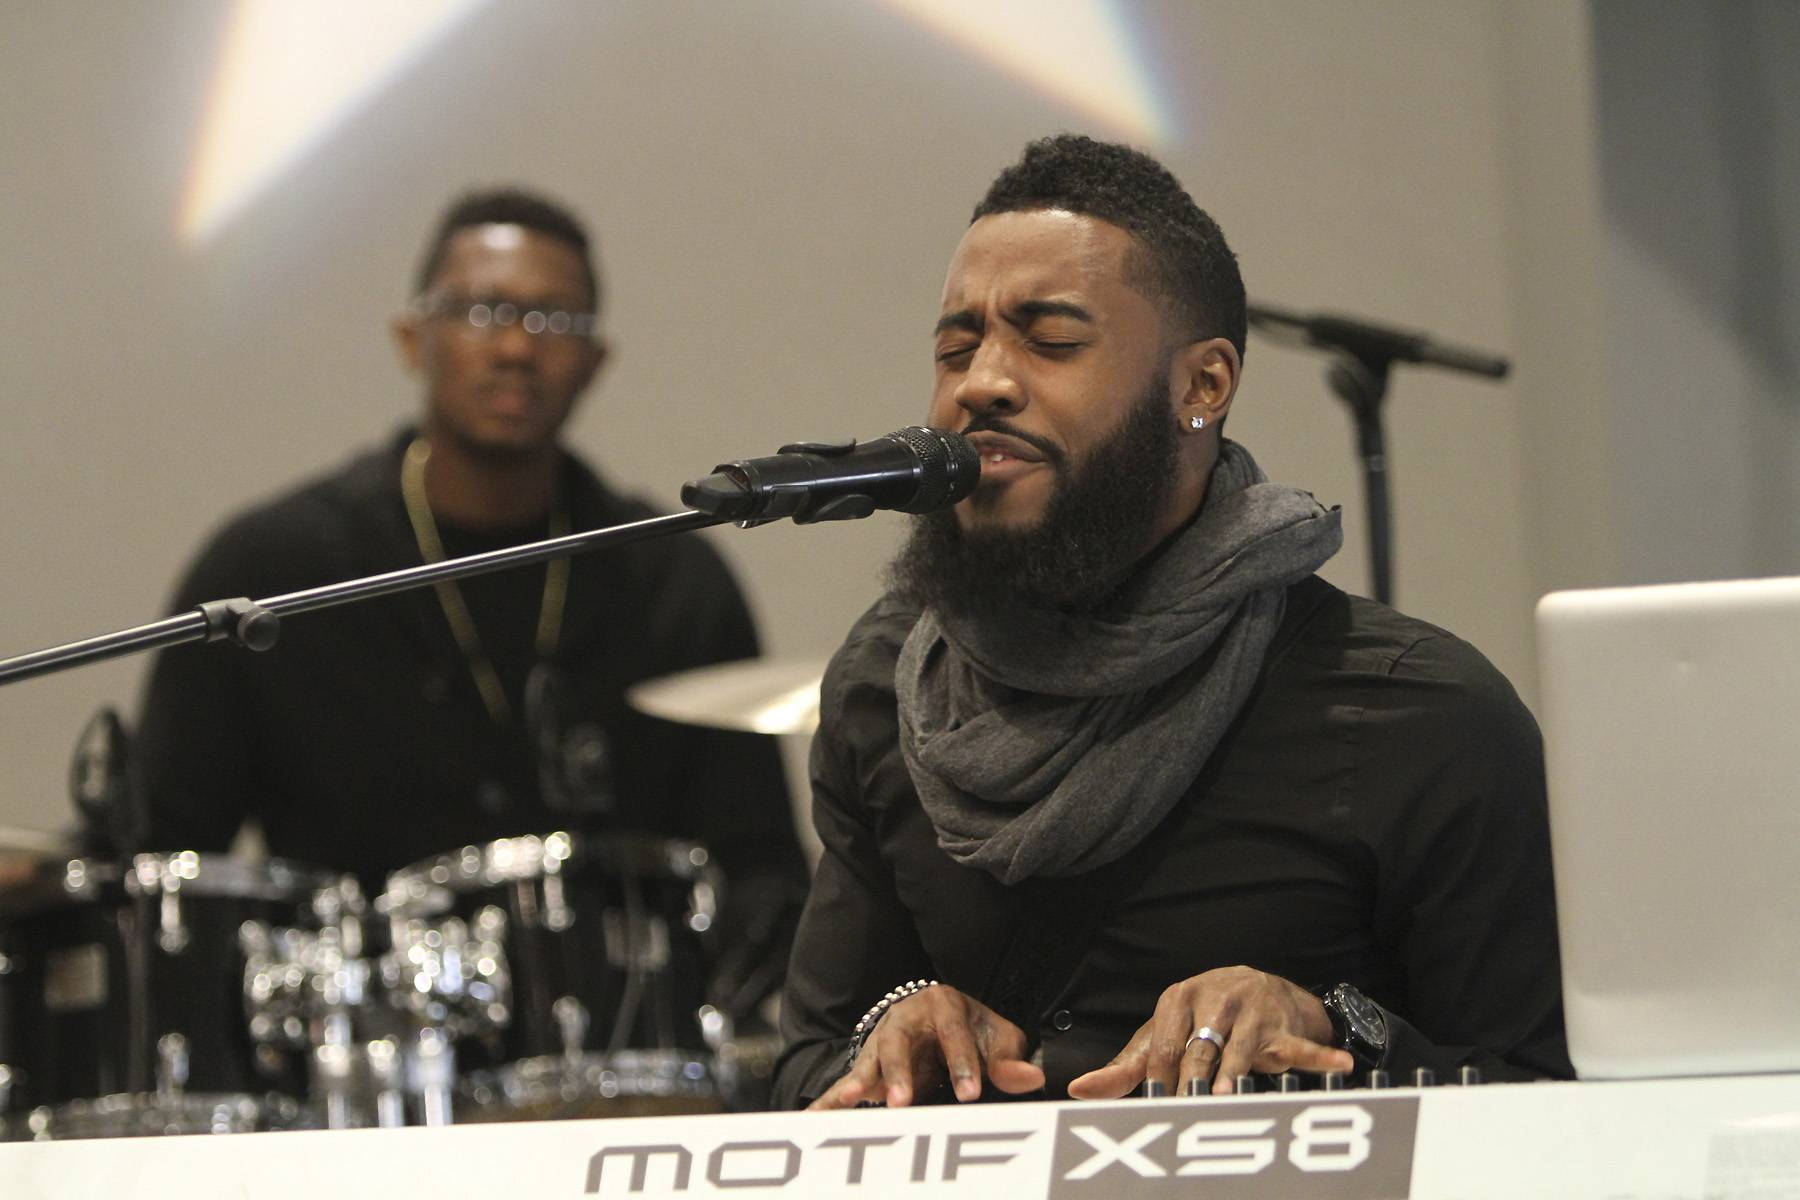 Behind the Mic - Behind the mic and his keyboard, artist Charles King performed a moving set during the Celebration of Gospel Prayer Breakfast.  (Photo: Maury Phillips/Getty Images for BET)